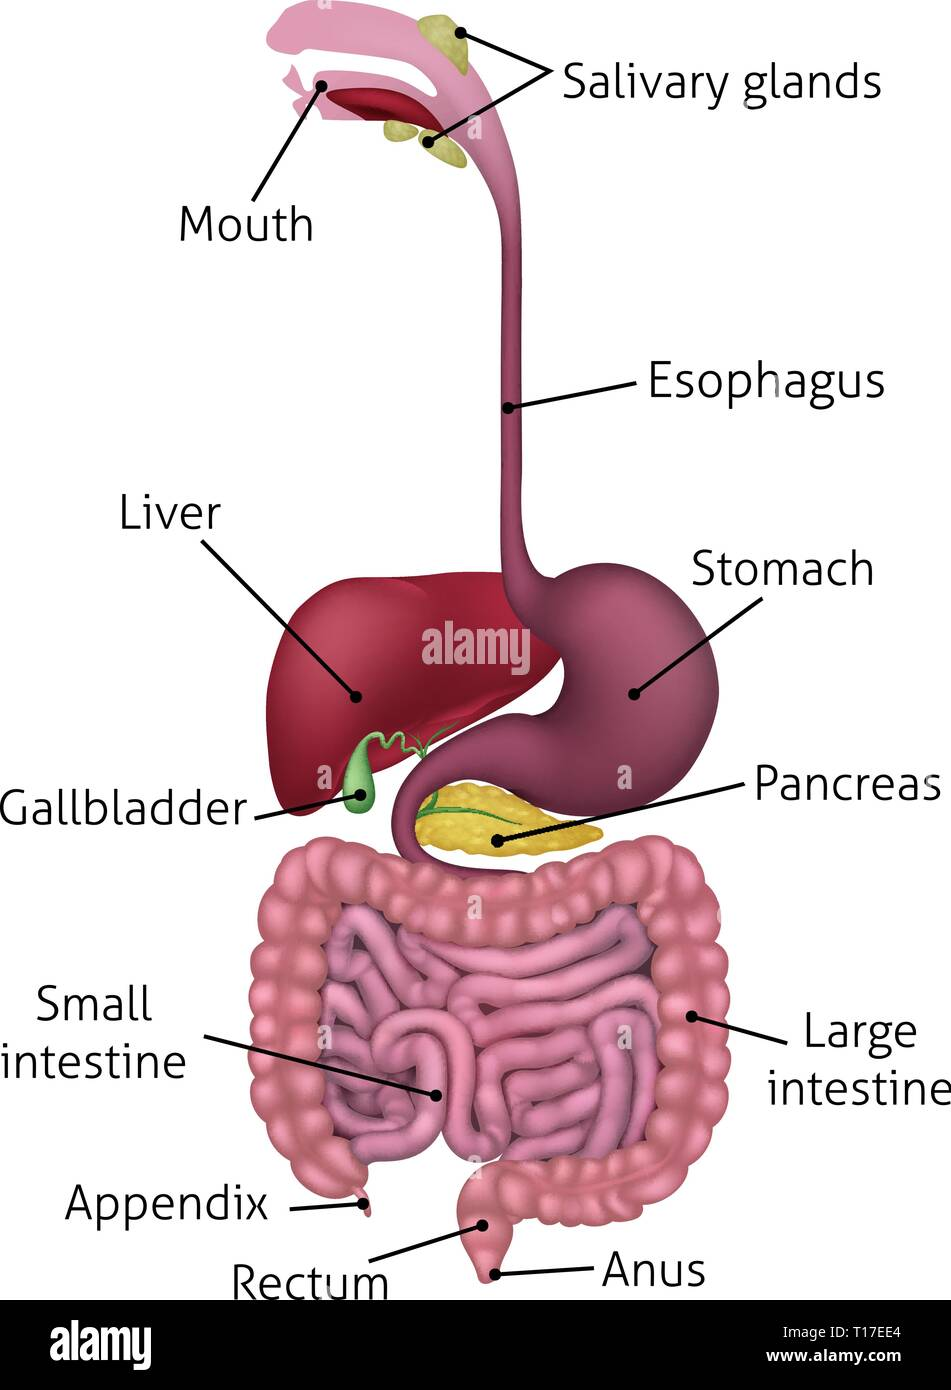 Can You Drag The Labels To The Correct Locations In This Diagram Of Human Digestive Organs? : labels, correct, locations, diagram, human, digestive, organs?, Digestive, System, Diagram, Resolution, Stock, Photography, Images, Alamy